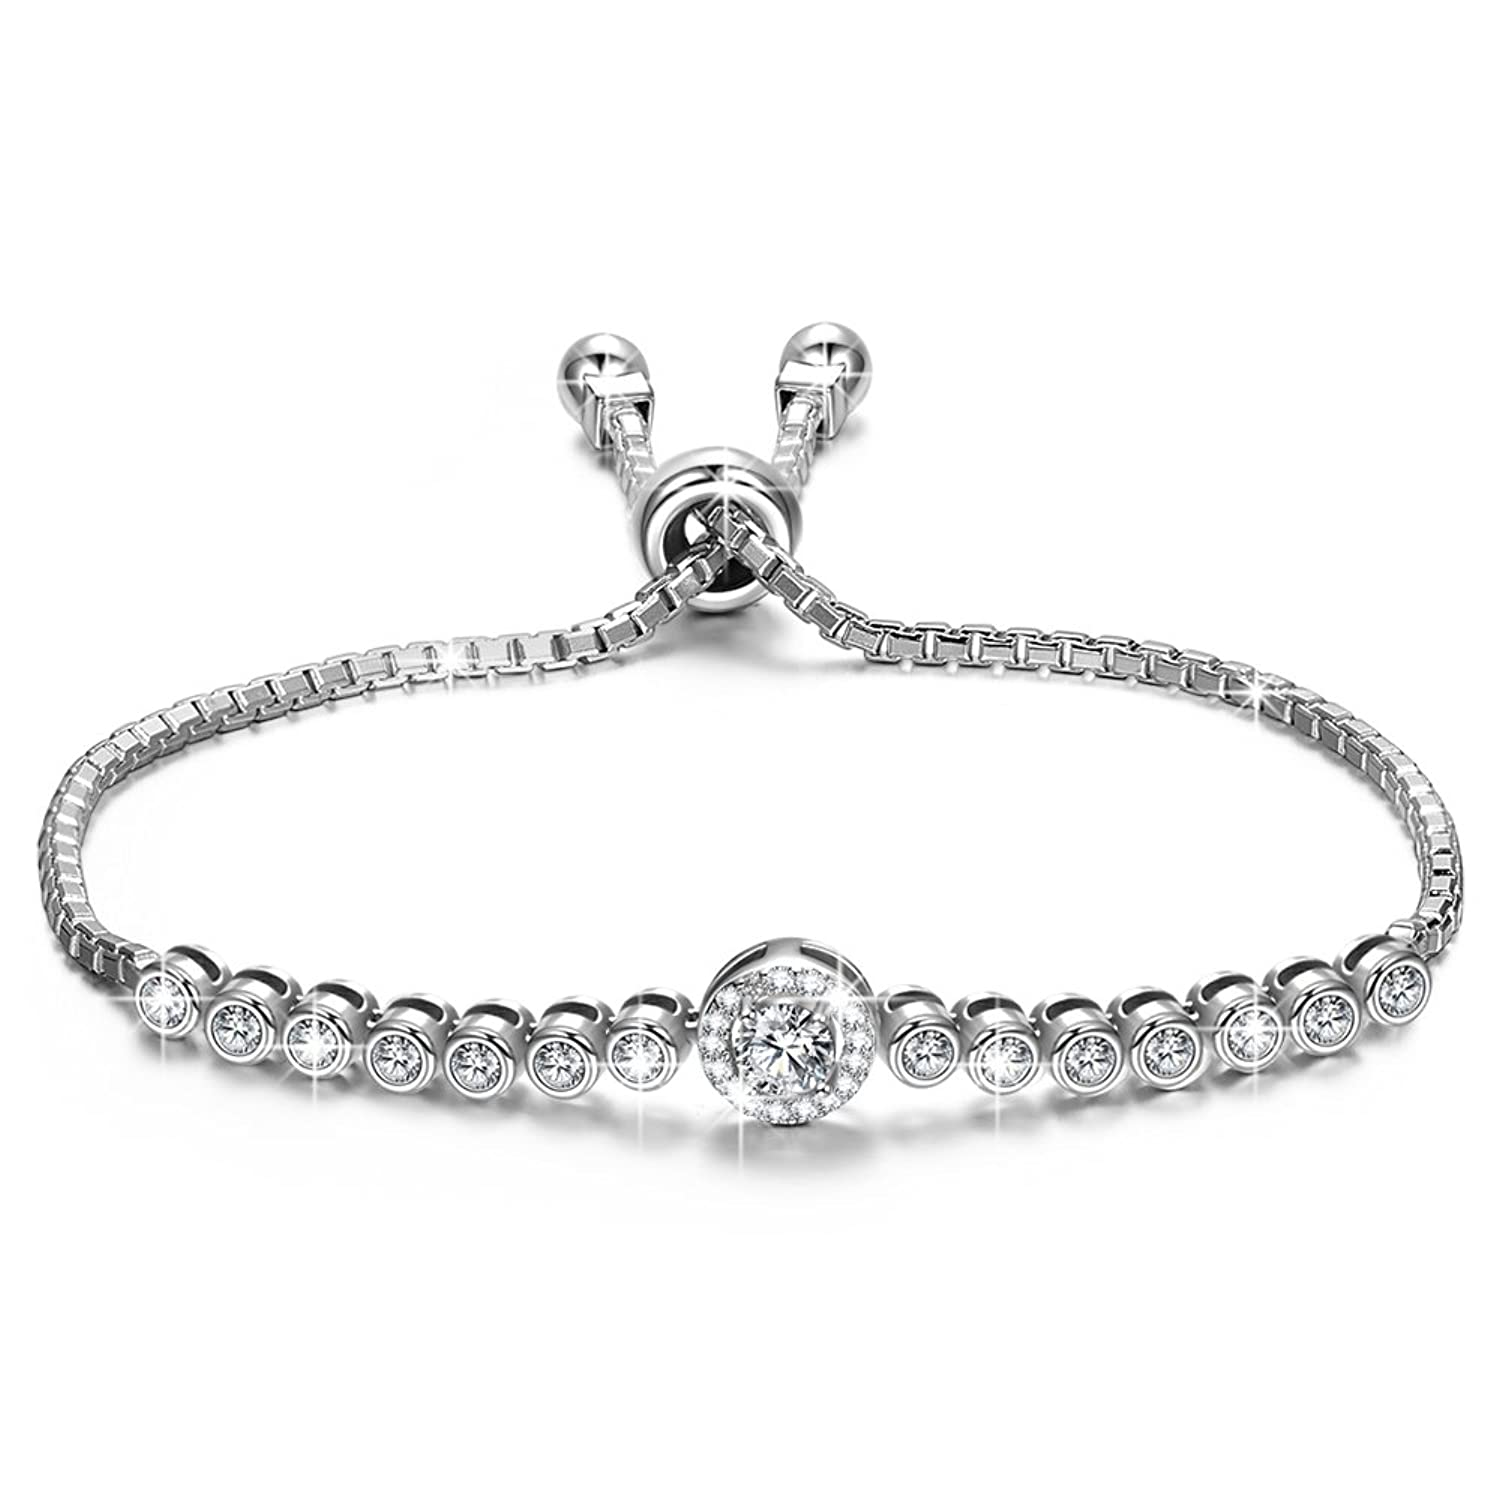 "♥Mothers Day Gifts♥ NINASUN ""The Little Mermaid"" Adjustable 6"" - 9"" 925 Sterling Silver AAAA CZ Chain Bracelet Fine Jewelry for Women"